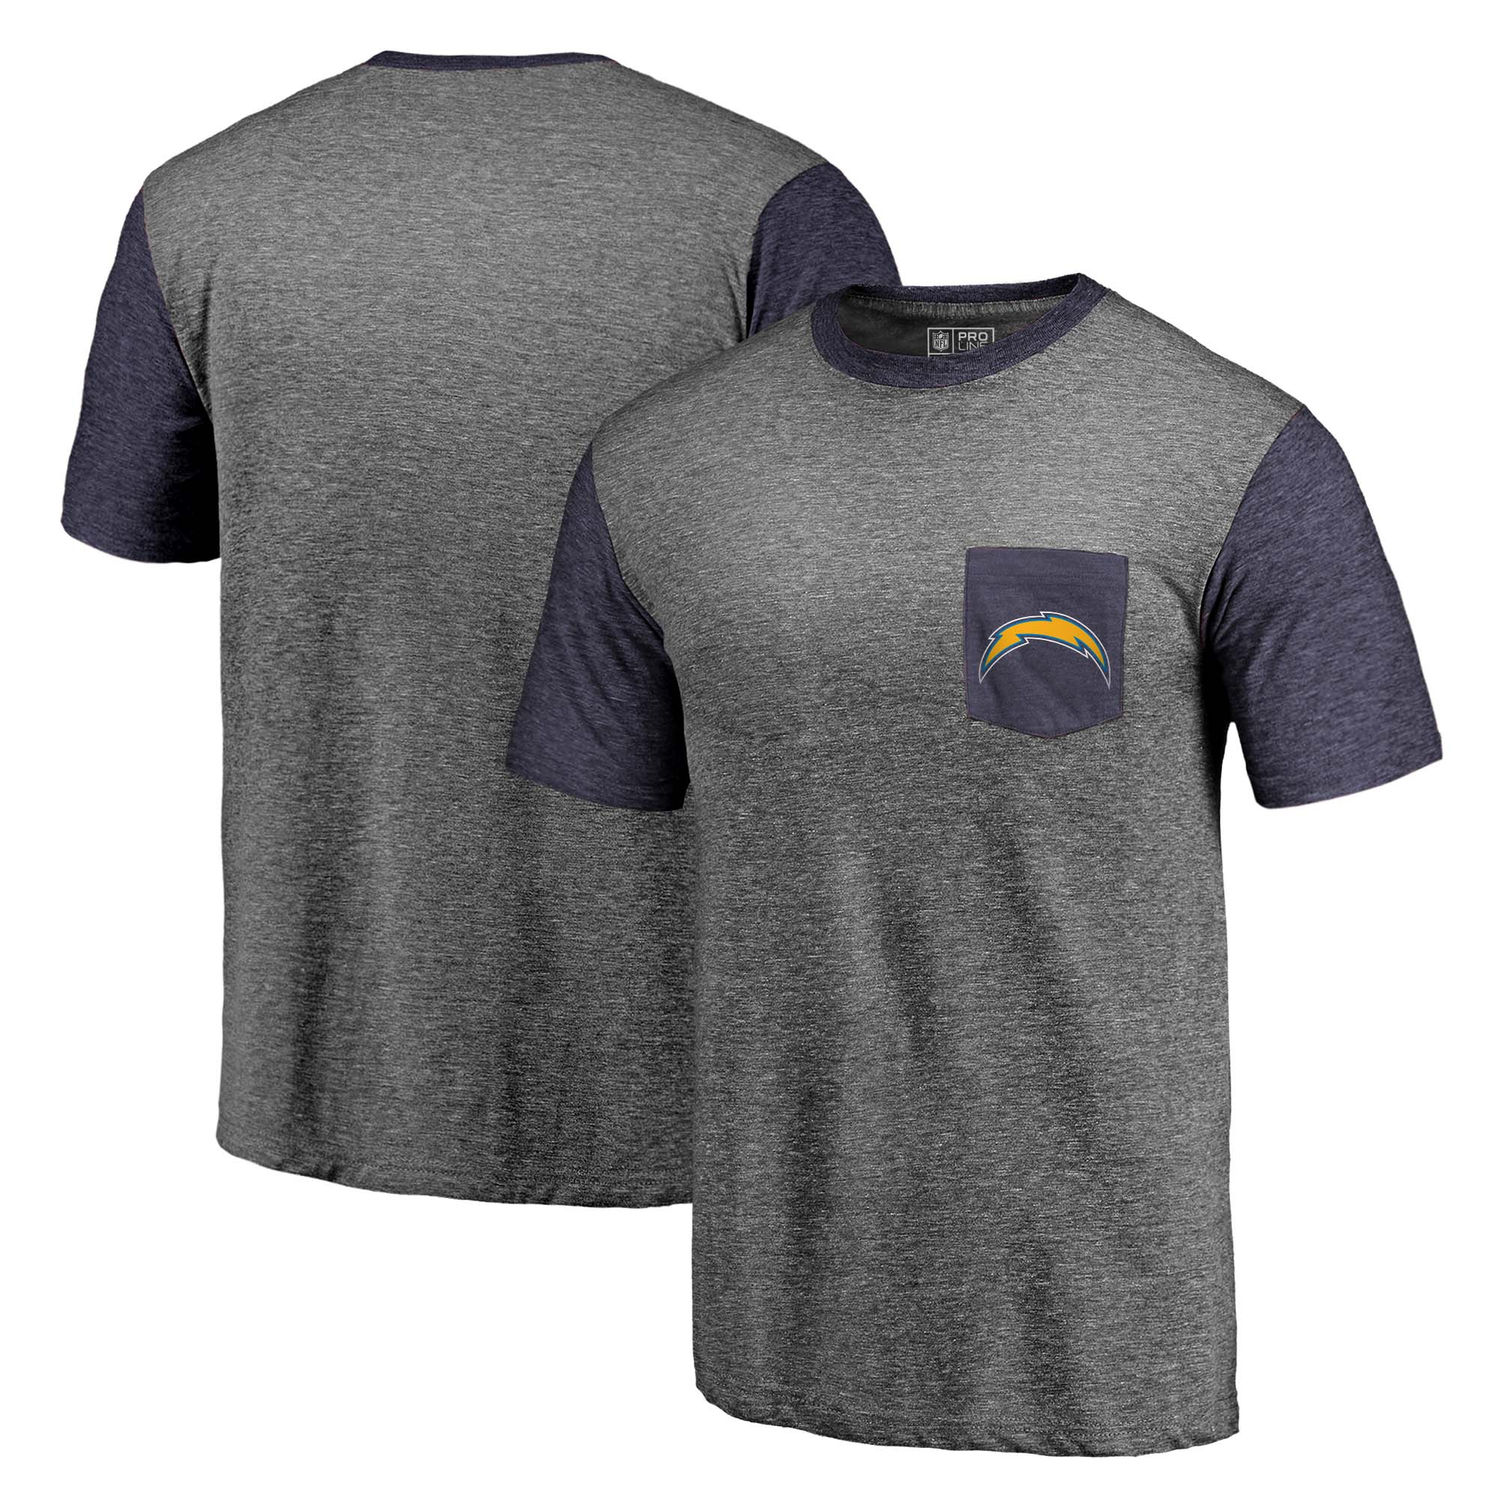 Men's Los Angeles Chargers NFL Pro Line by Fanatics Branded Heathered Gray-Navy Refresh Pocket T-Shirt